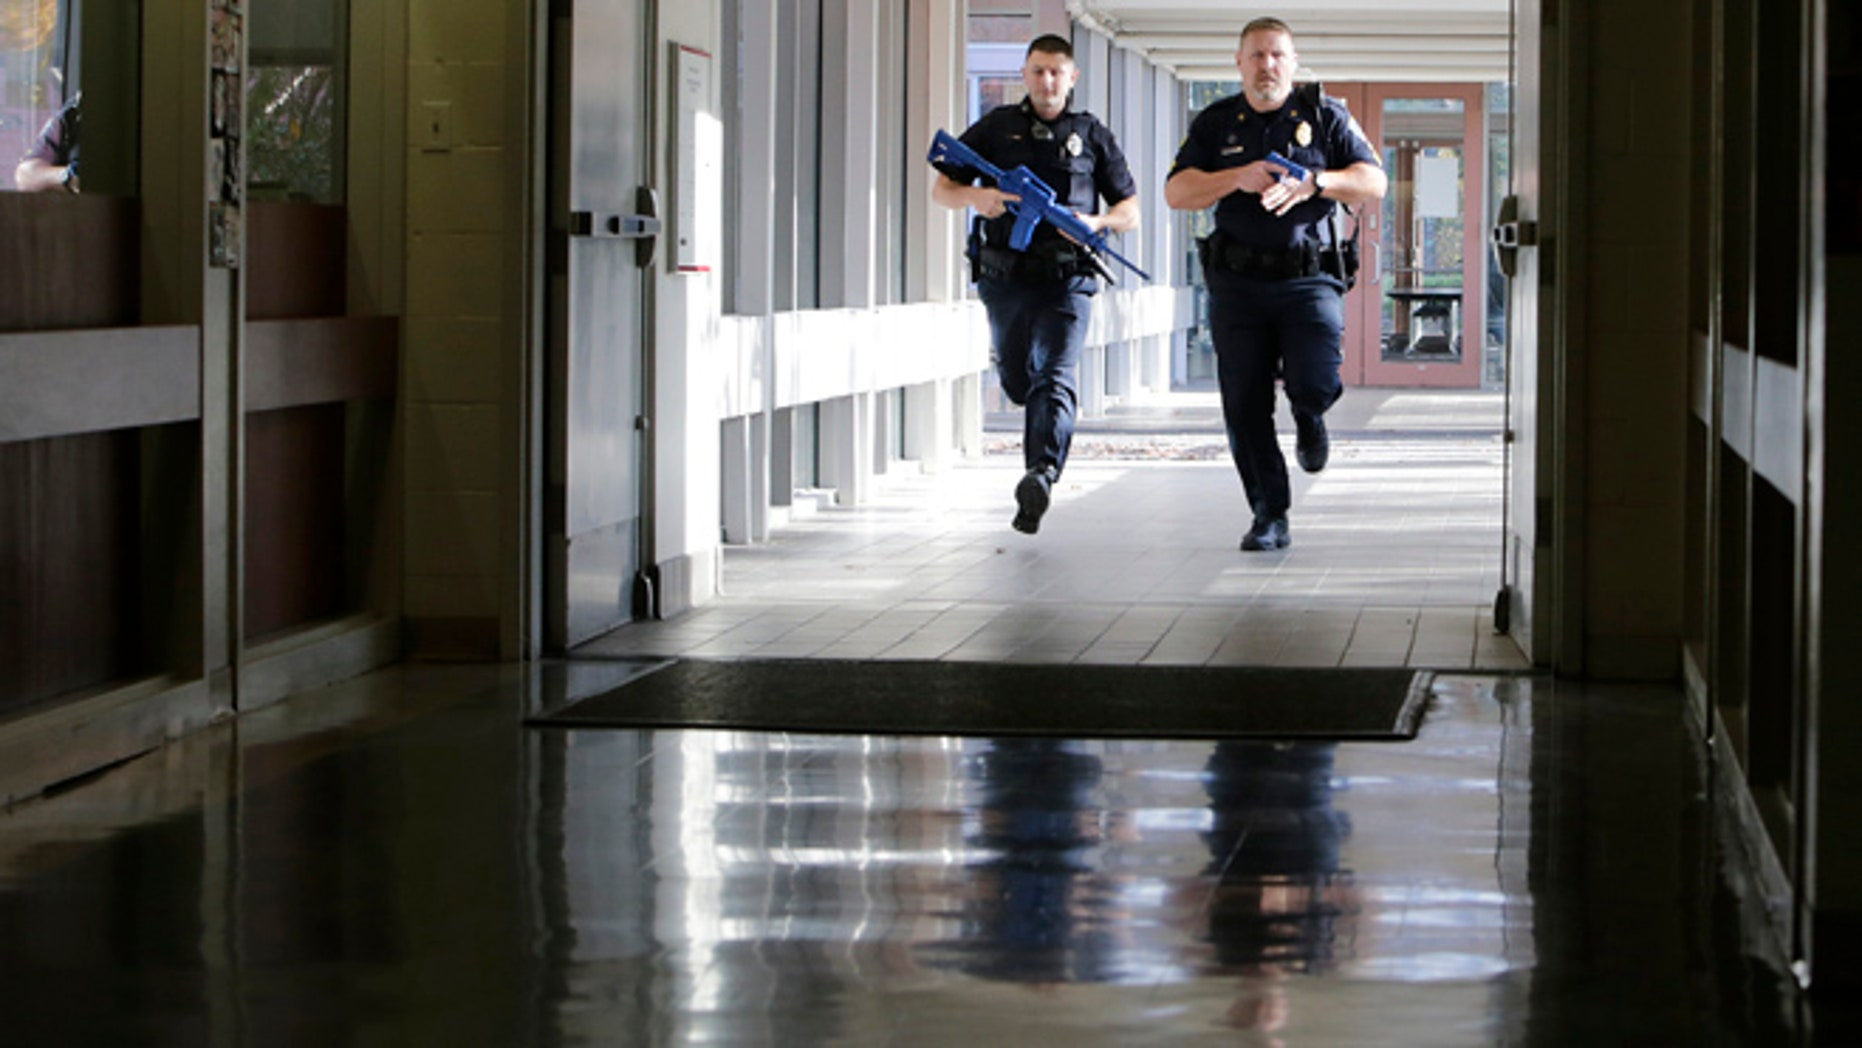 Officers from the Methuen, Mass., police department carry training weapons as they search the halls of a school during a demonstration in Methuen, Tuesday, Nov. 11, 2014. School and police officials have unveiled a new system to detect and track a gunman that they say is the first in operation in a public school. (AP Photo/Charles Krupa)